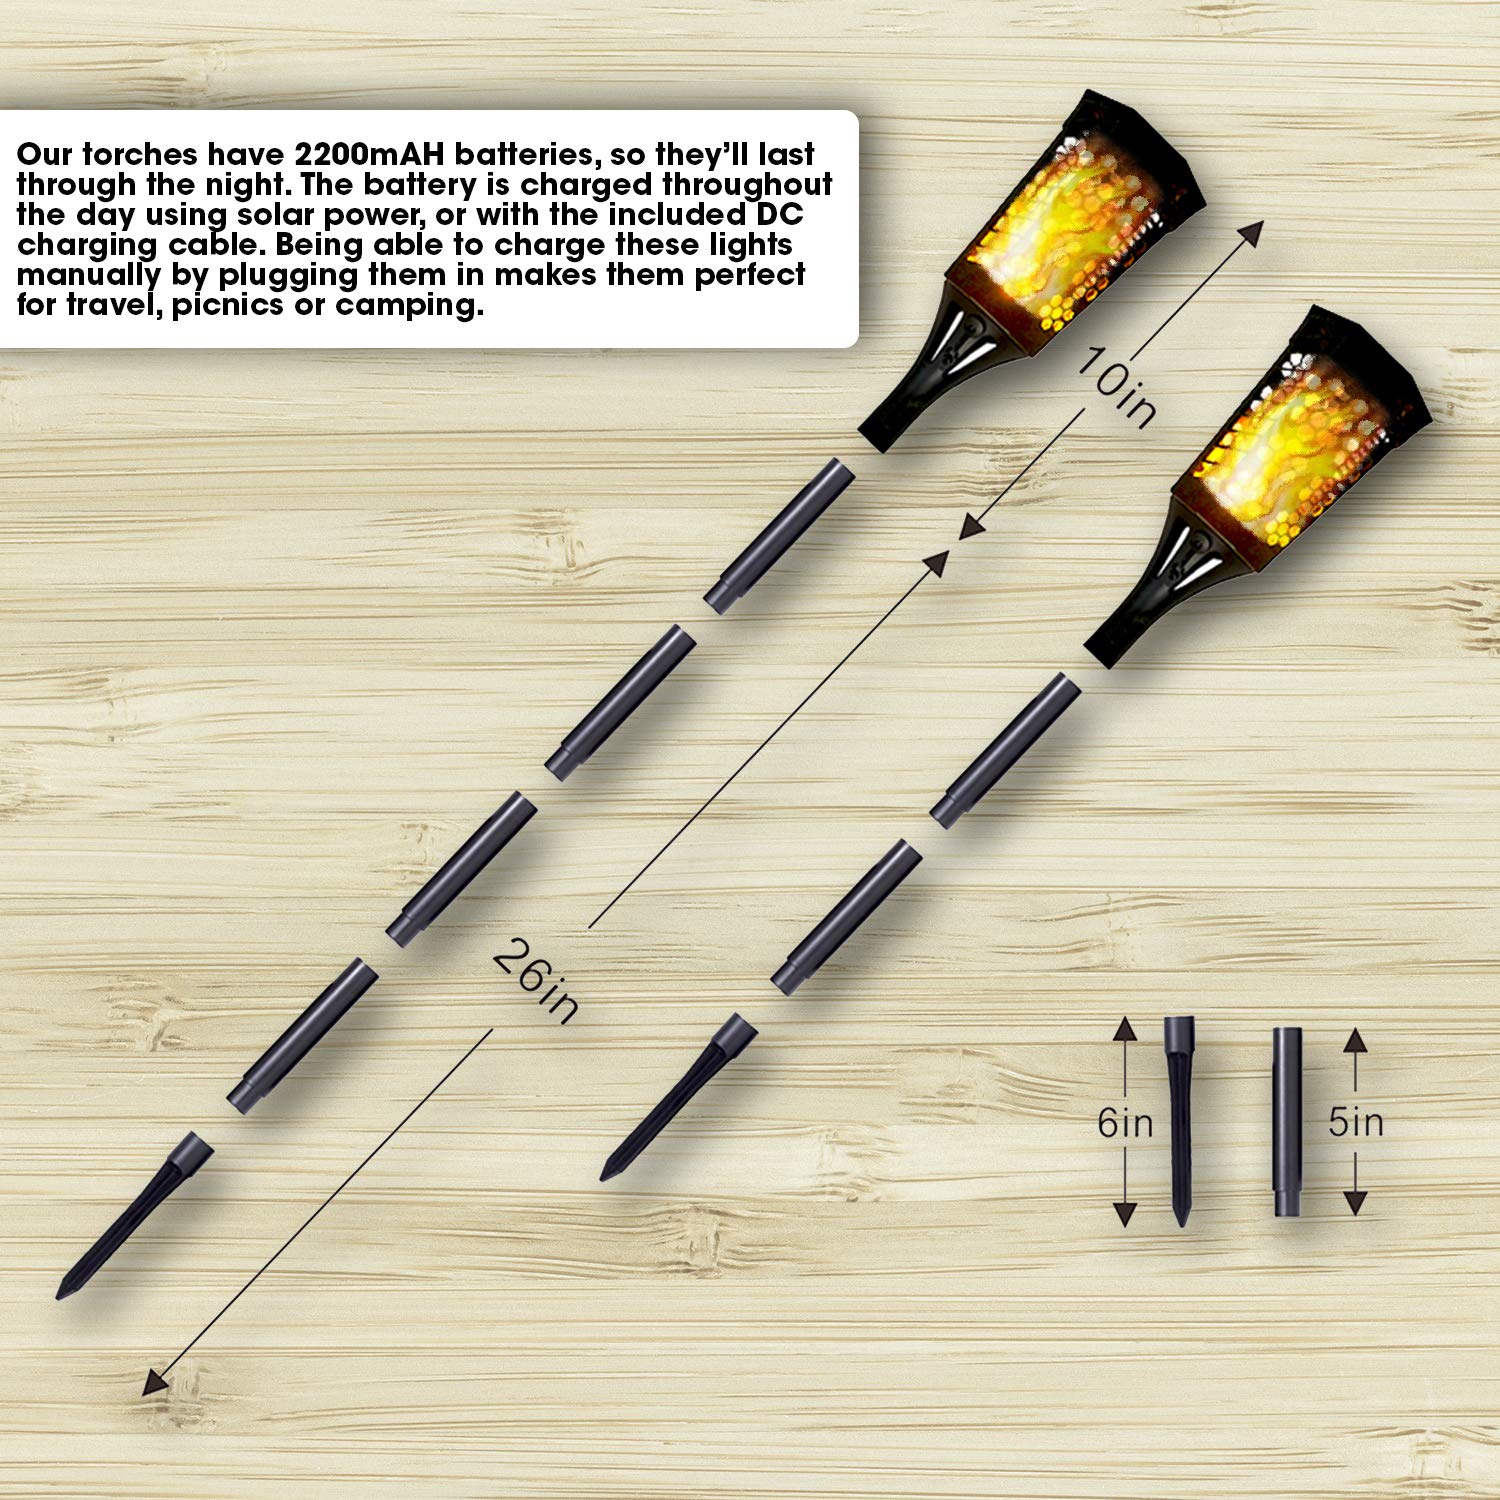 SteadyDoggie Solar Torch Landscaping Light Kit 4 Pack| Flickering Flames Torch Lights | Upgraded with USB Charging | Solar Tiki Torches Outdoor | Dusk to Dawn Lighting with Auto On/Off Switch